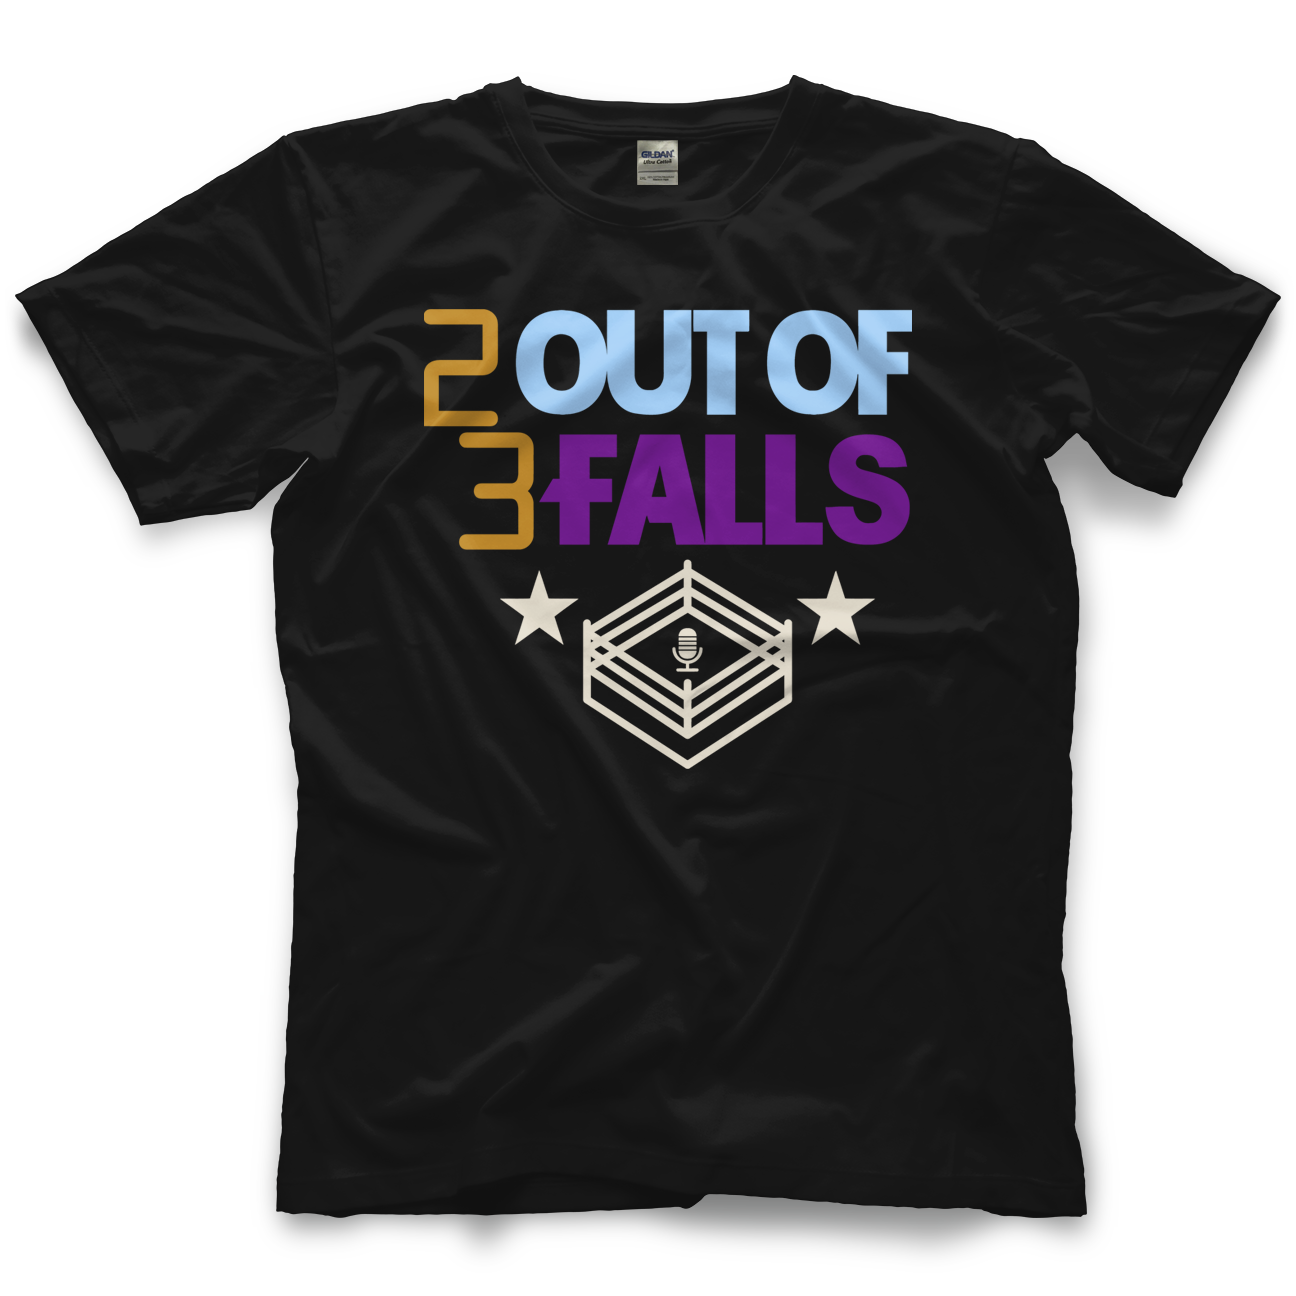 2 Out Of 3 Falls